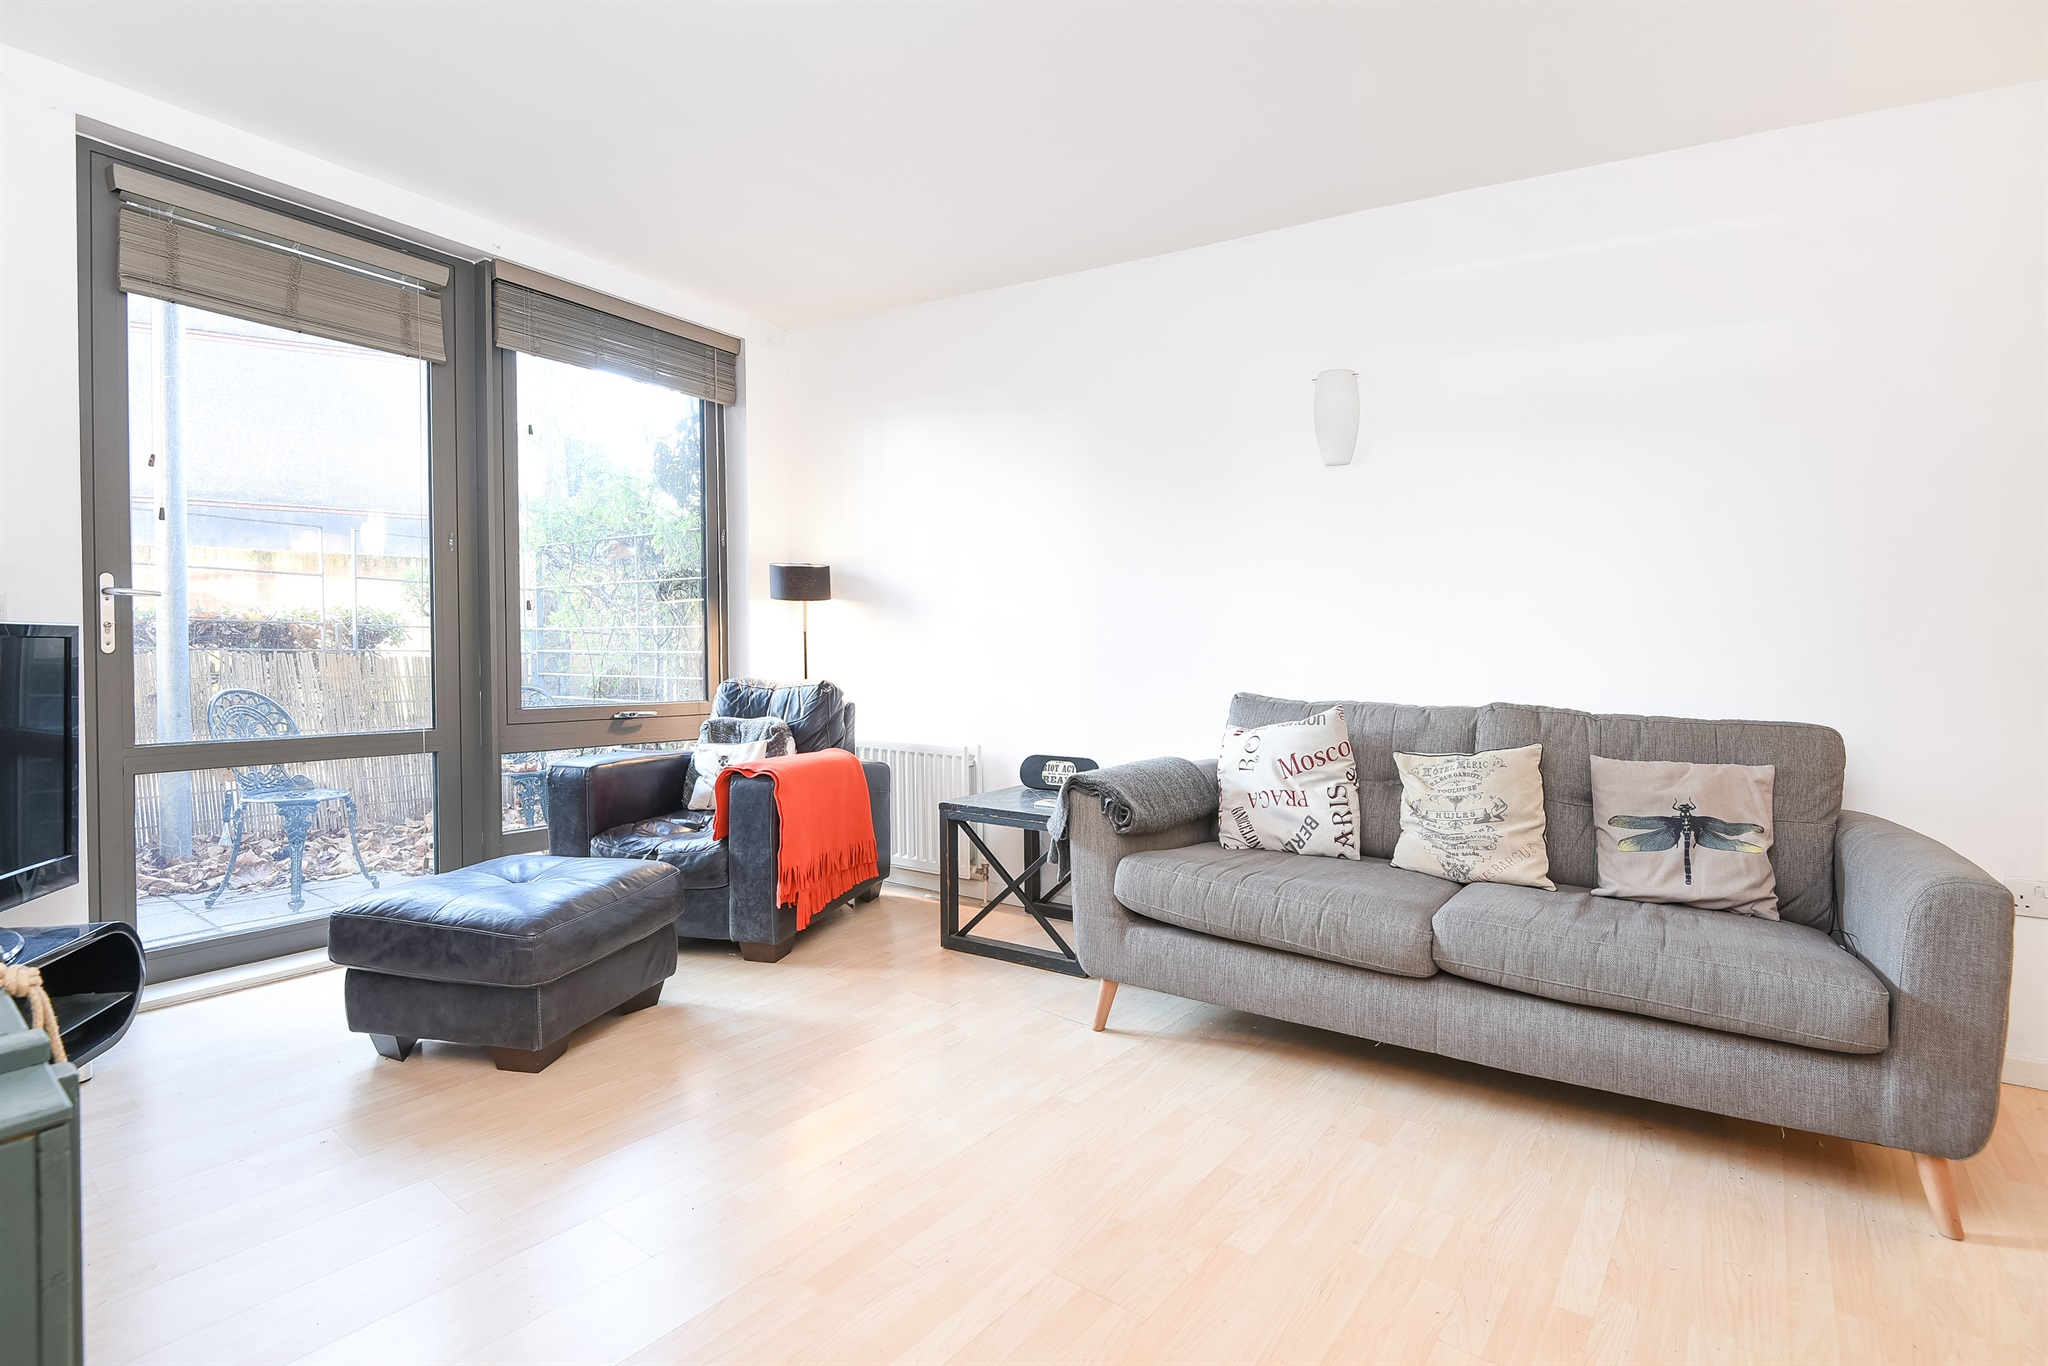 2 Bedroom Flat For Sale In Clapham Road Stockwell Sw9 London